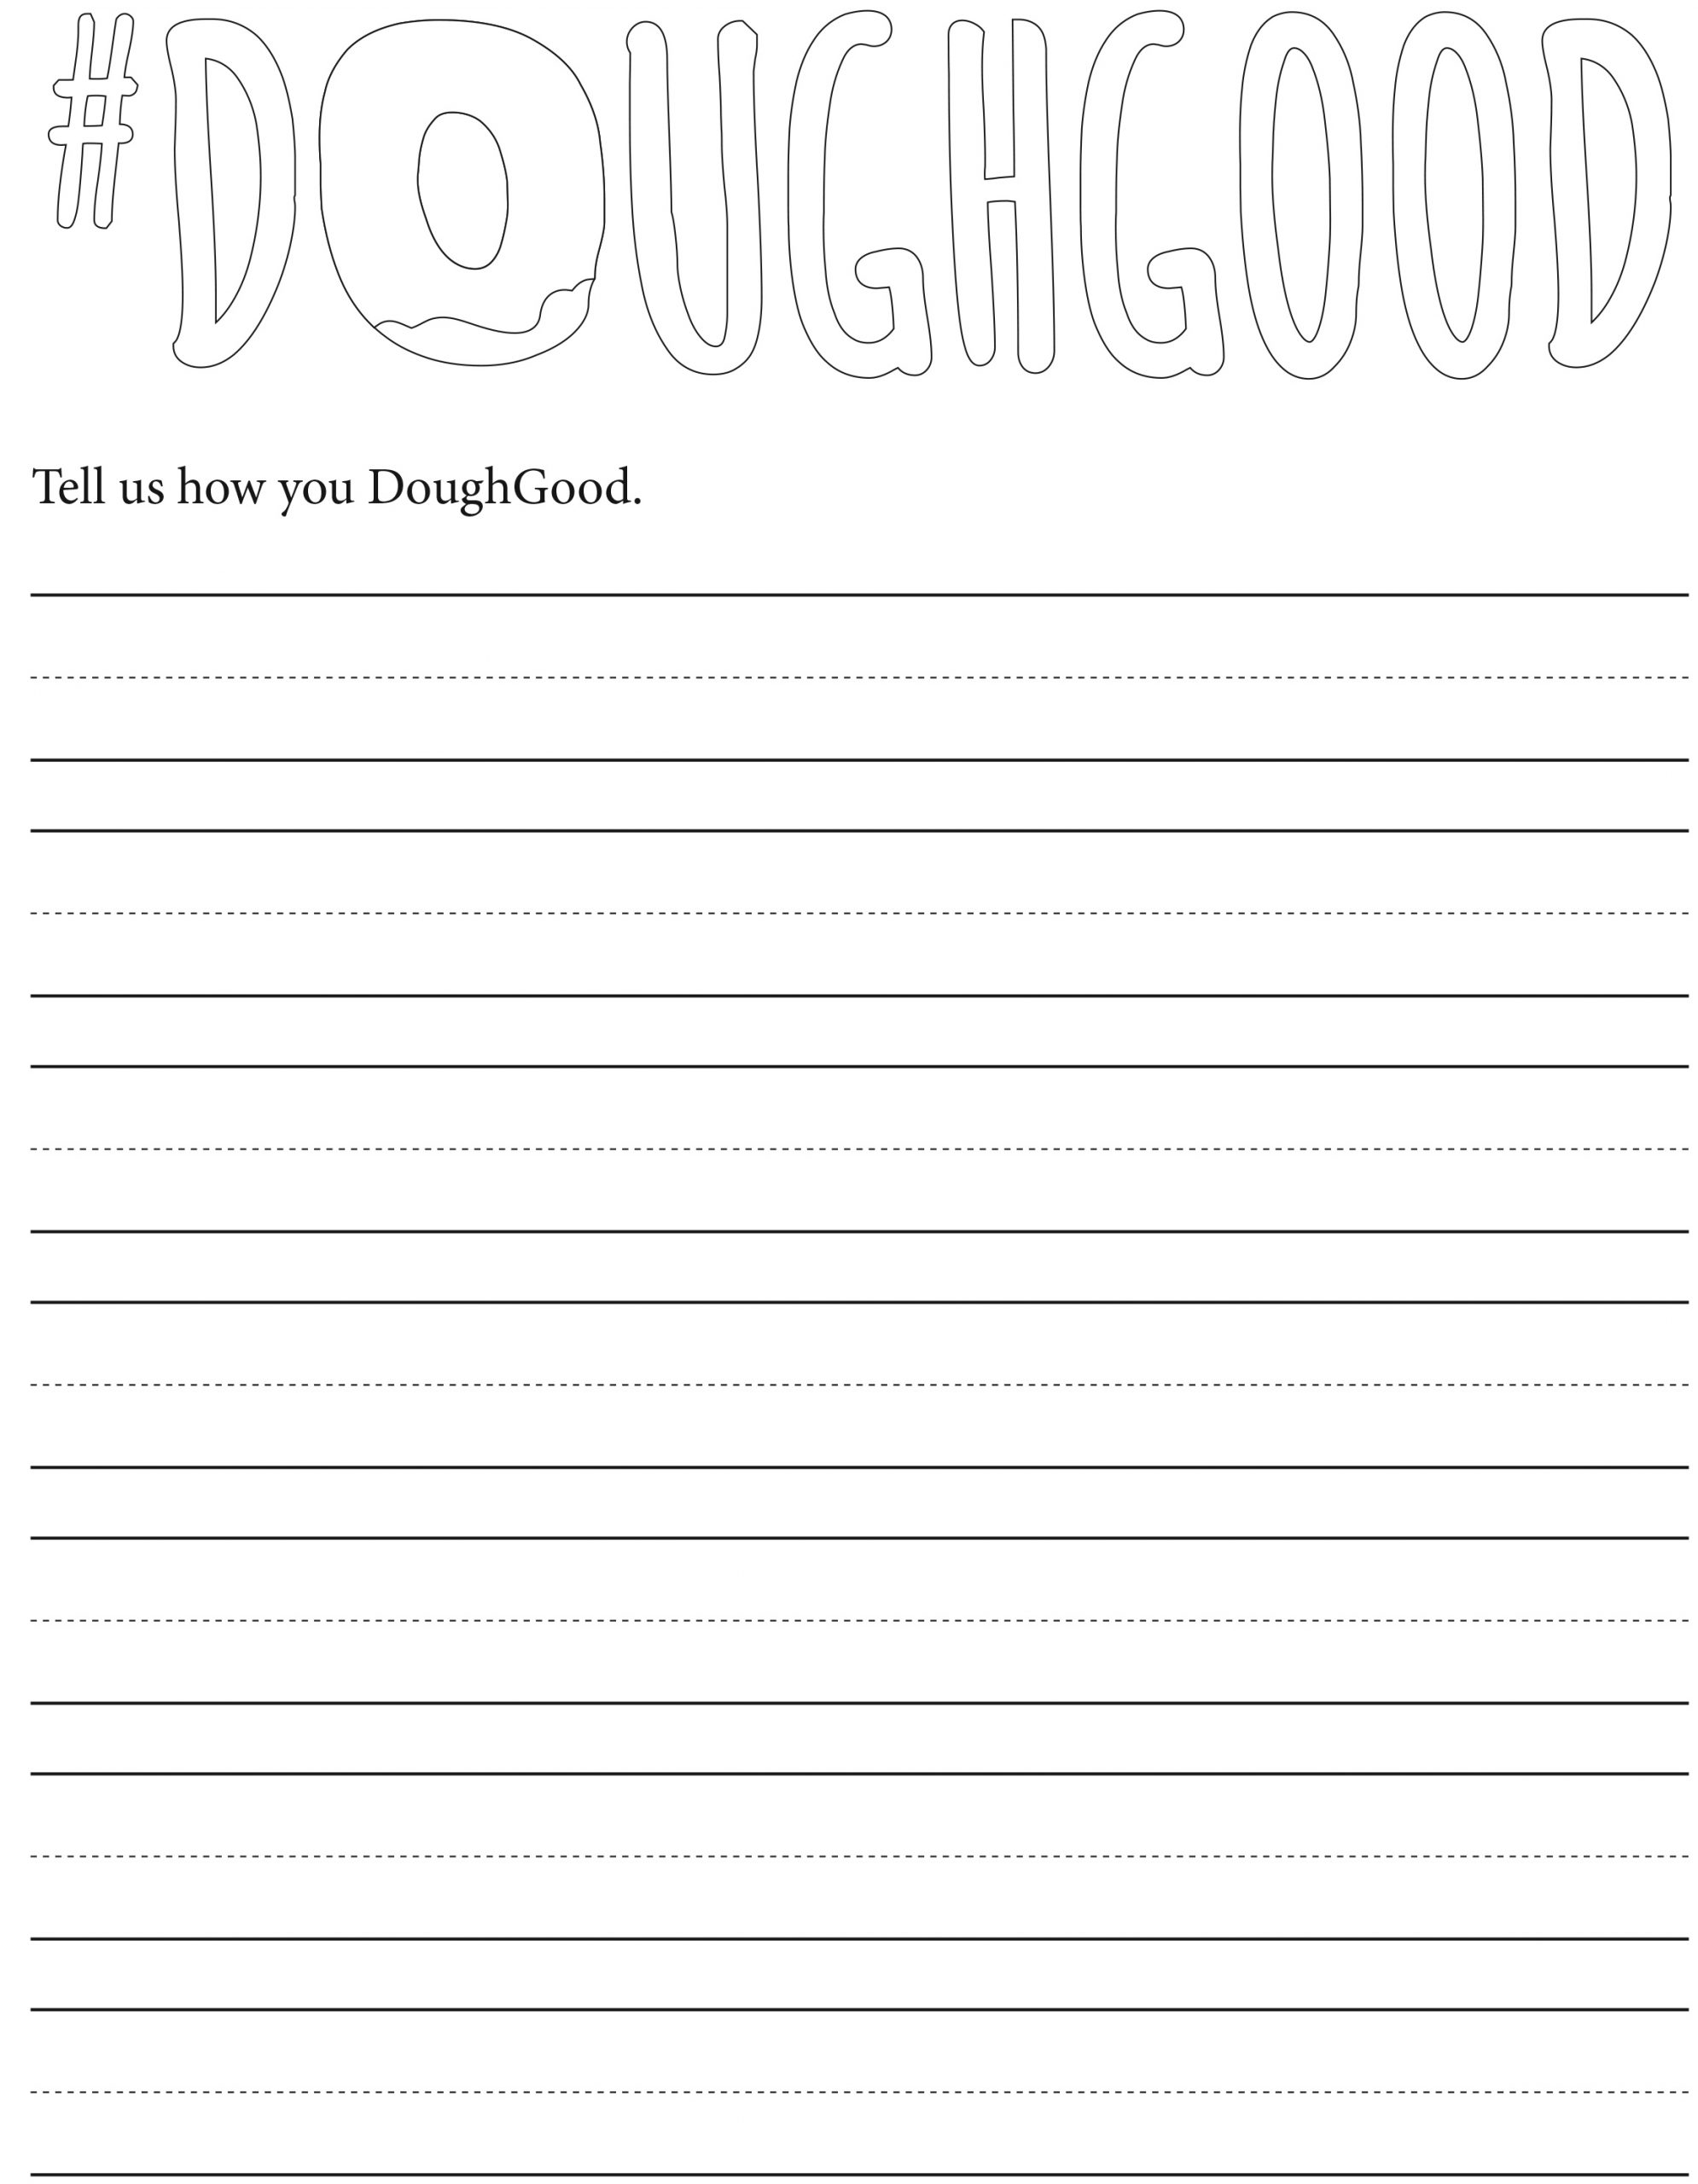 doughgood coloring page